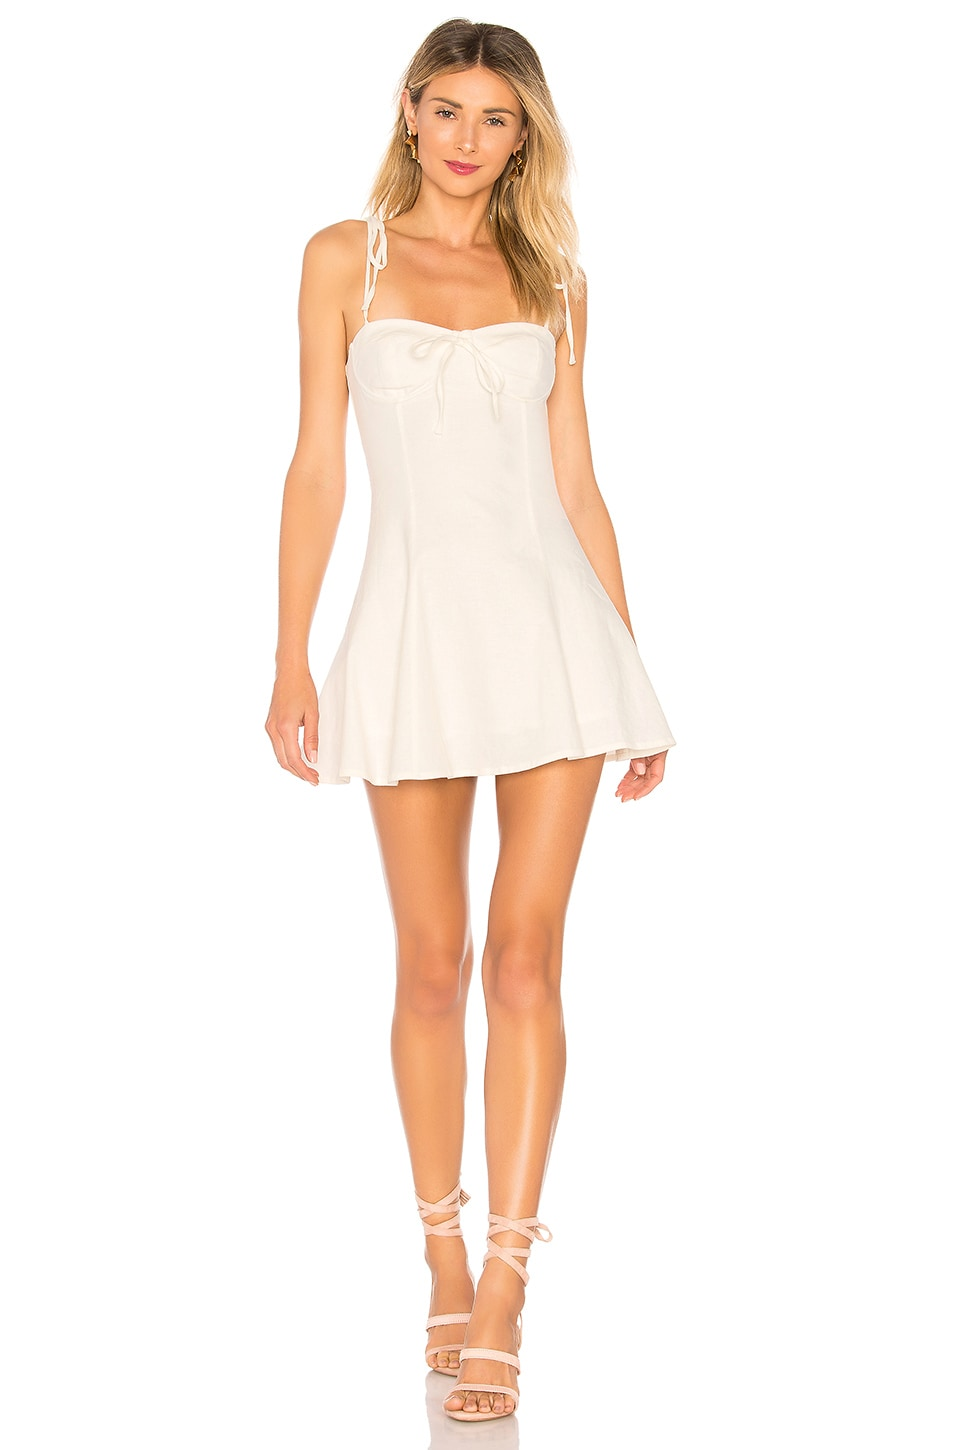 MAJORELLE Tahoe Dress in White